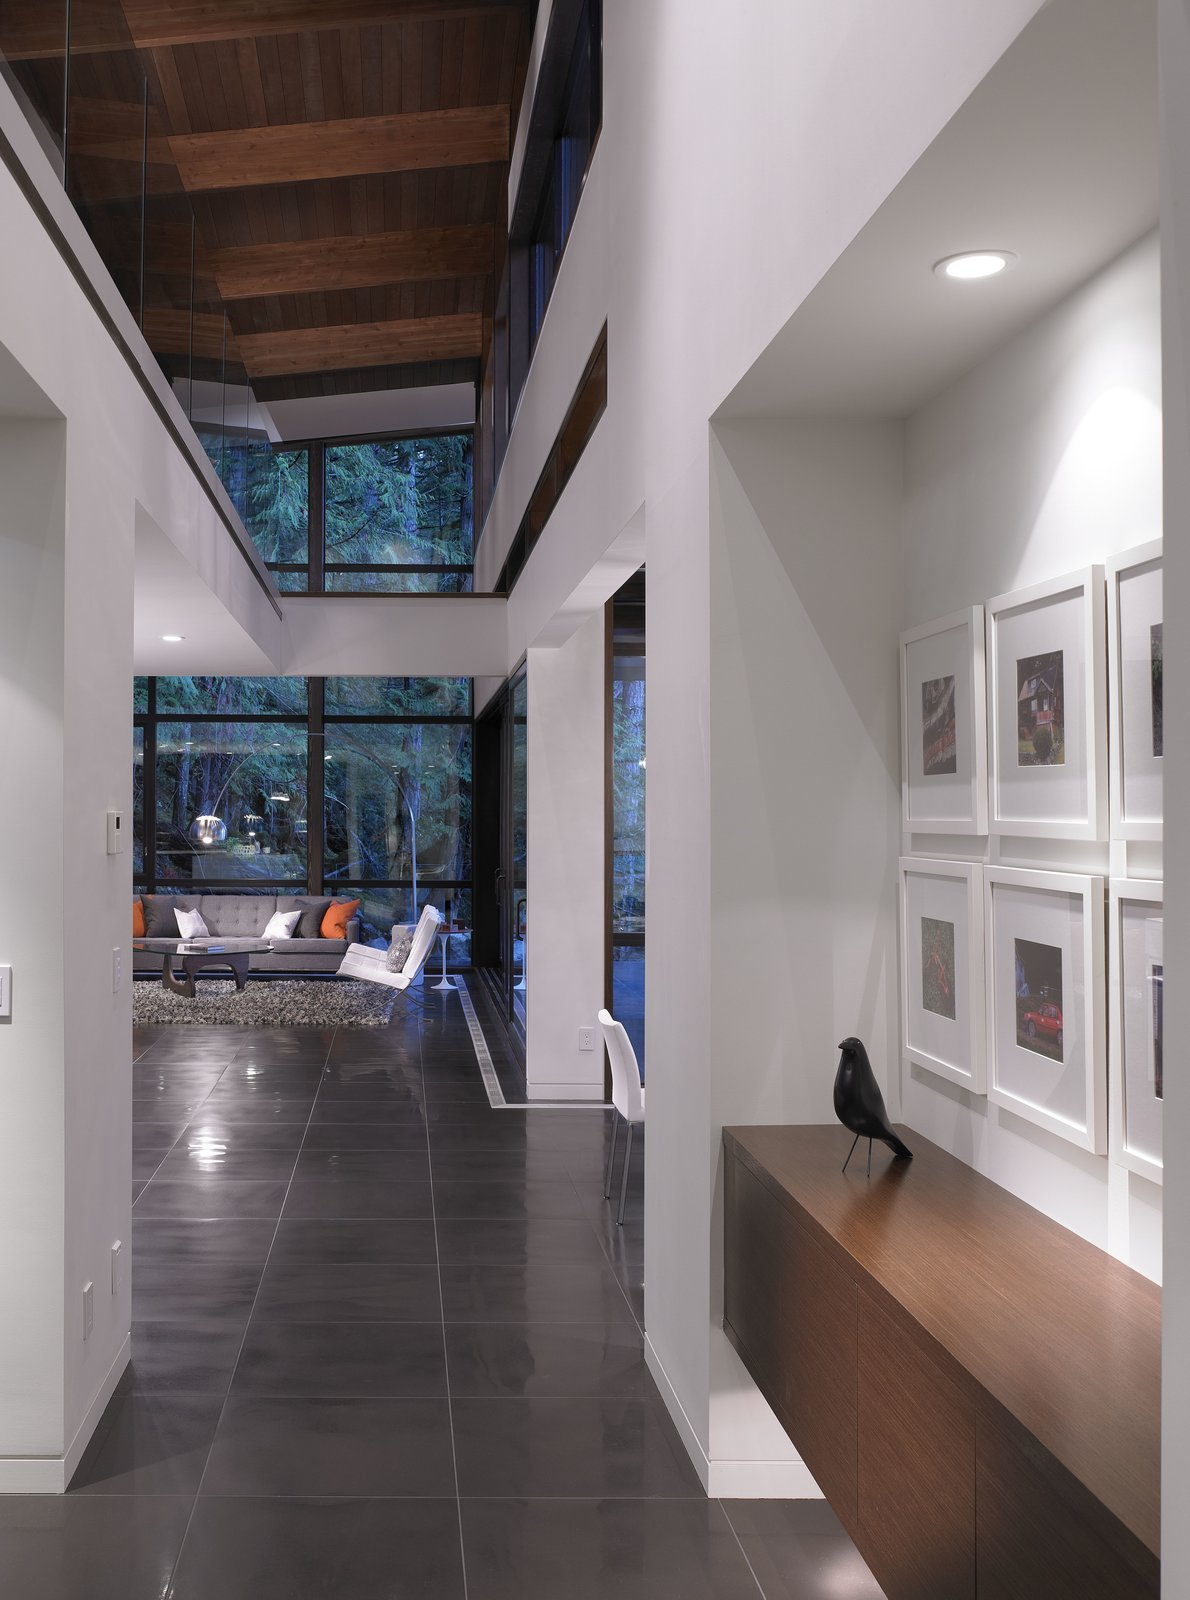 Photo 6 of 6 in Turkel Design's Award-Winning Gambier Island House